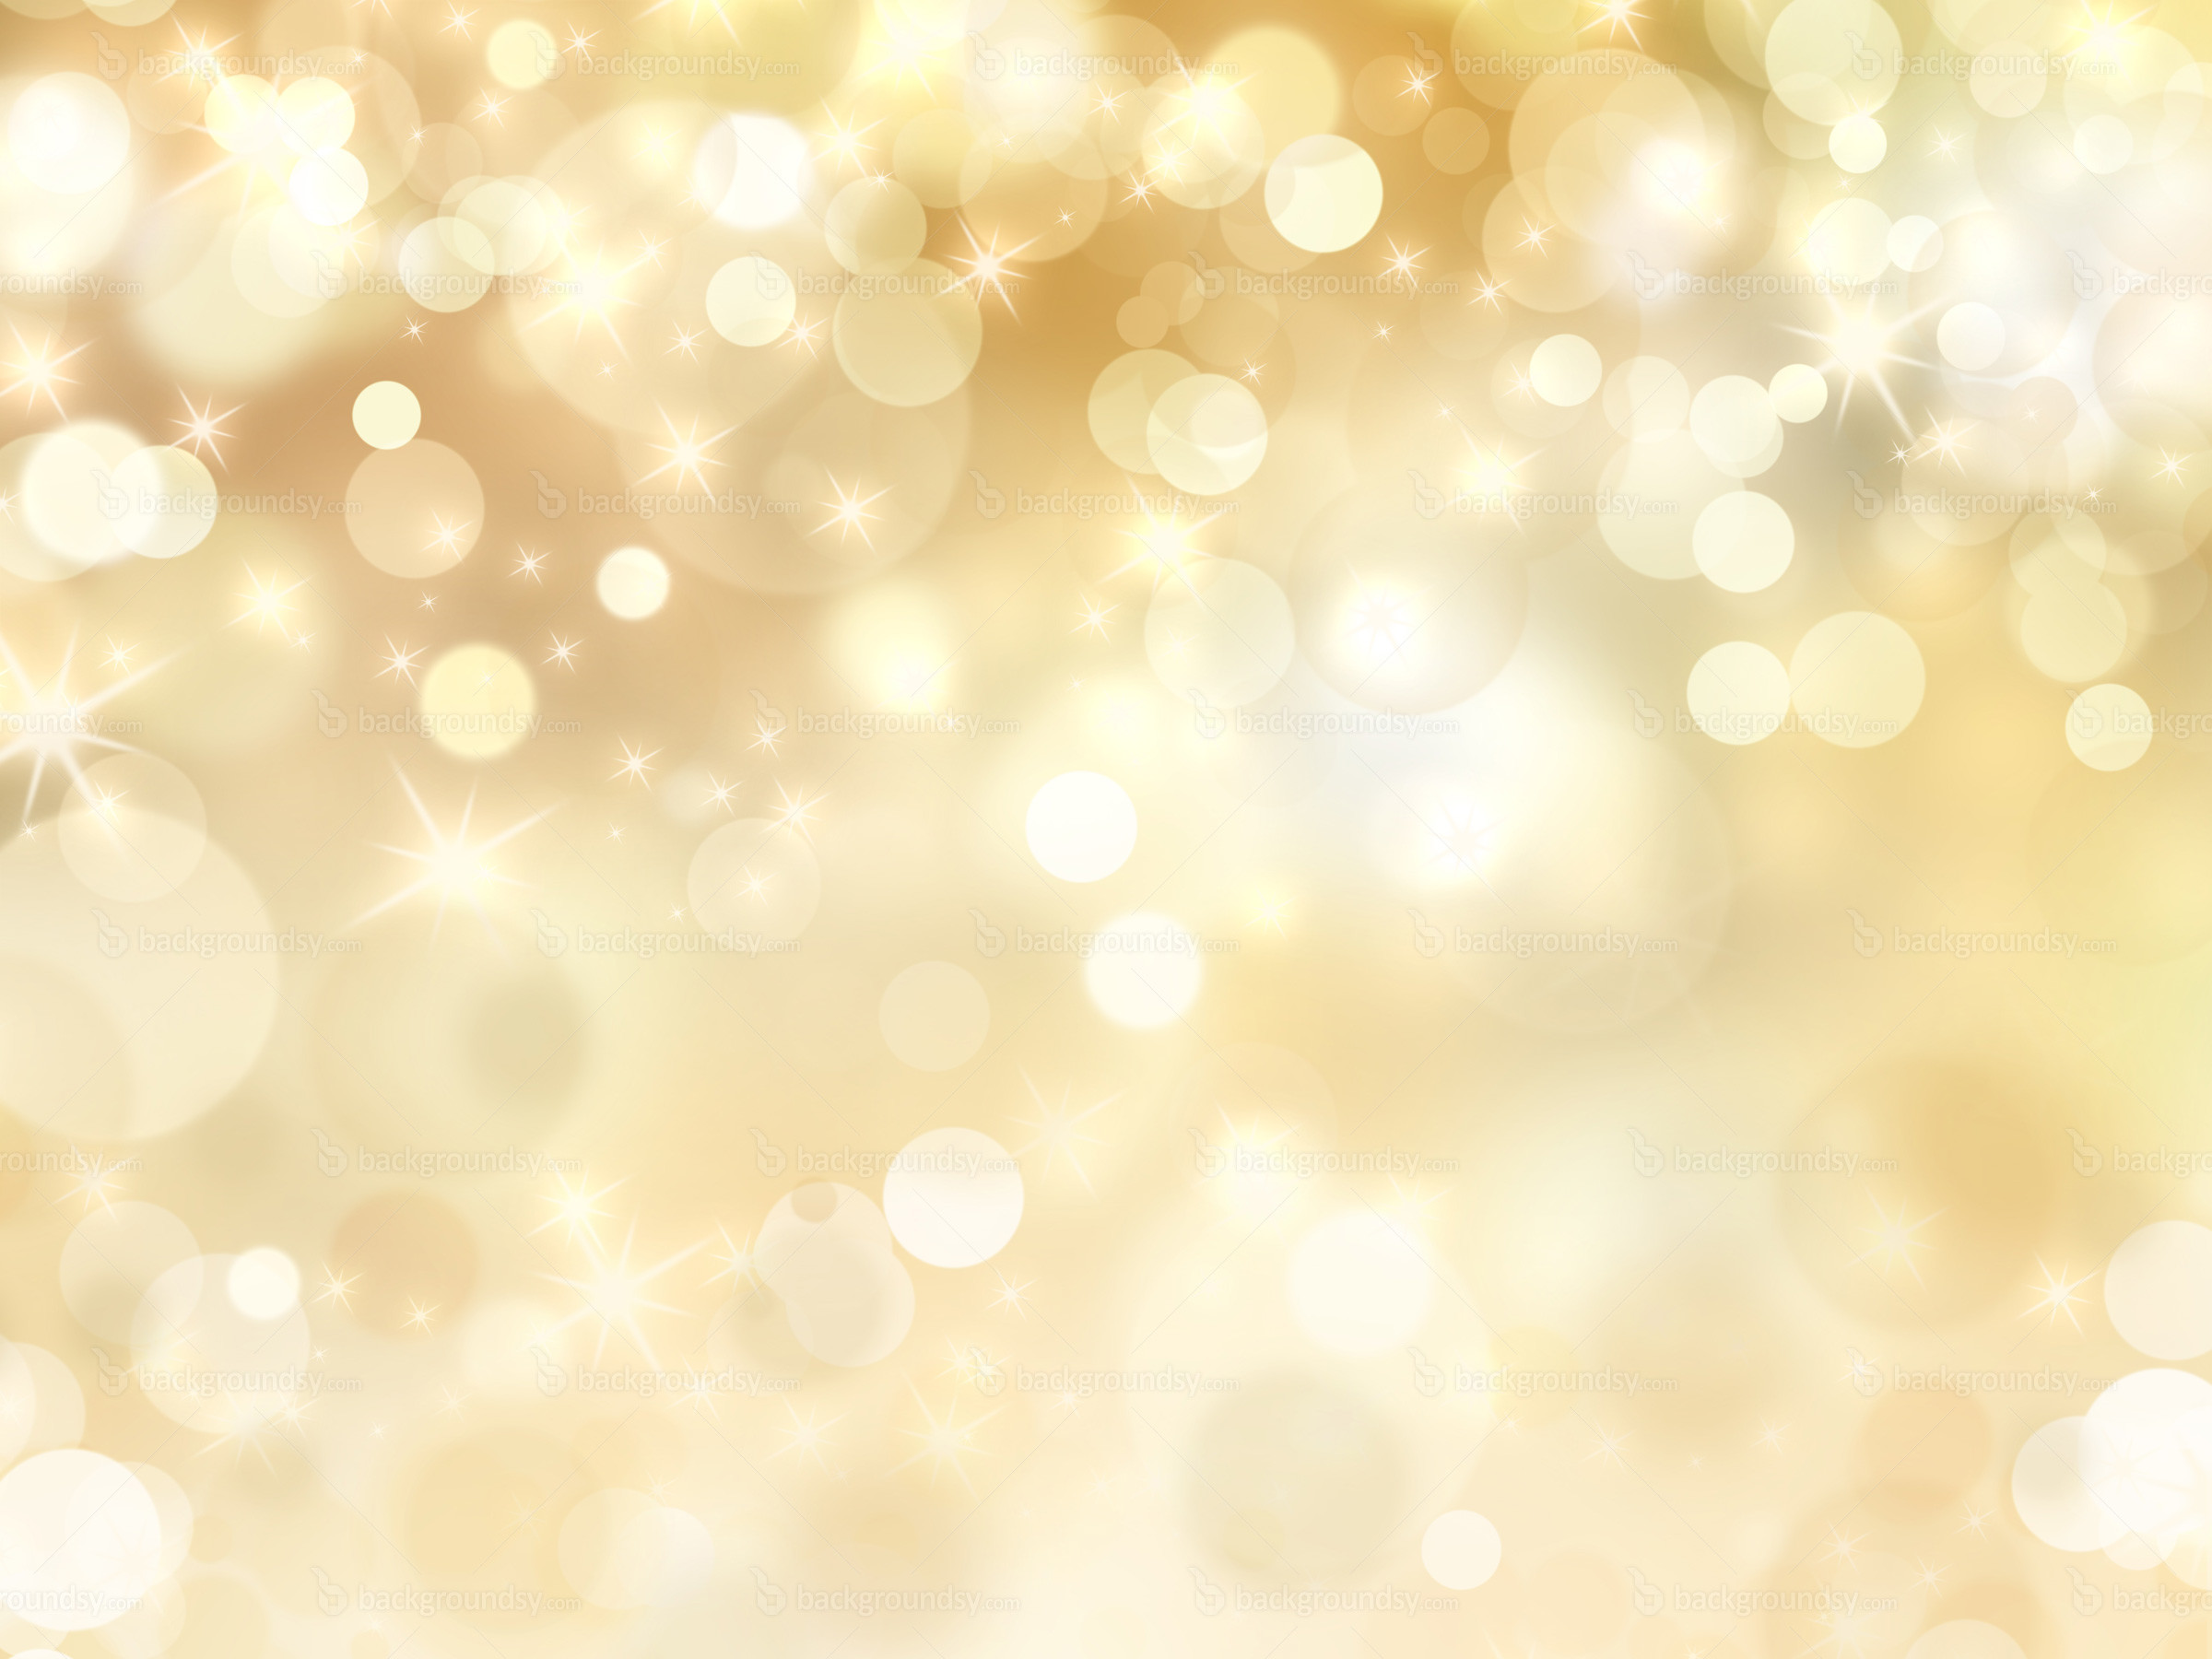 Abstract yellow sparkles background, defocused light particles on soft  yellow background.